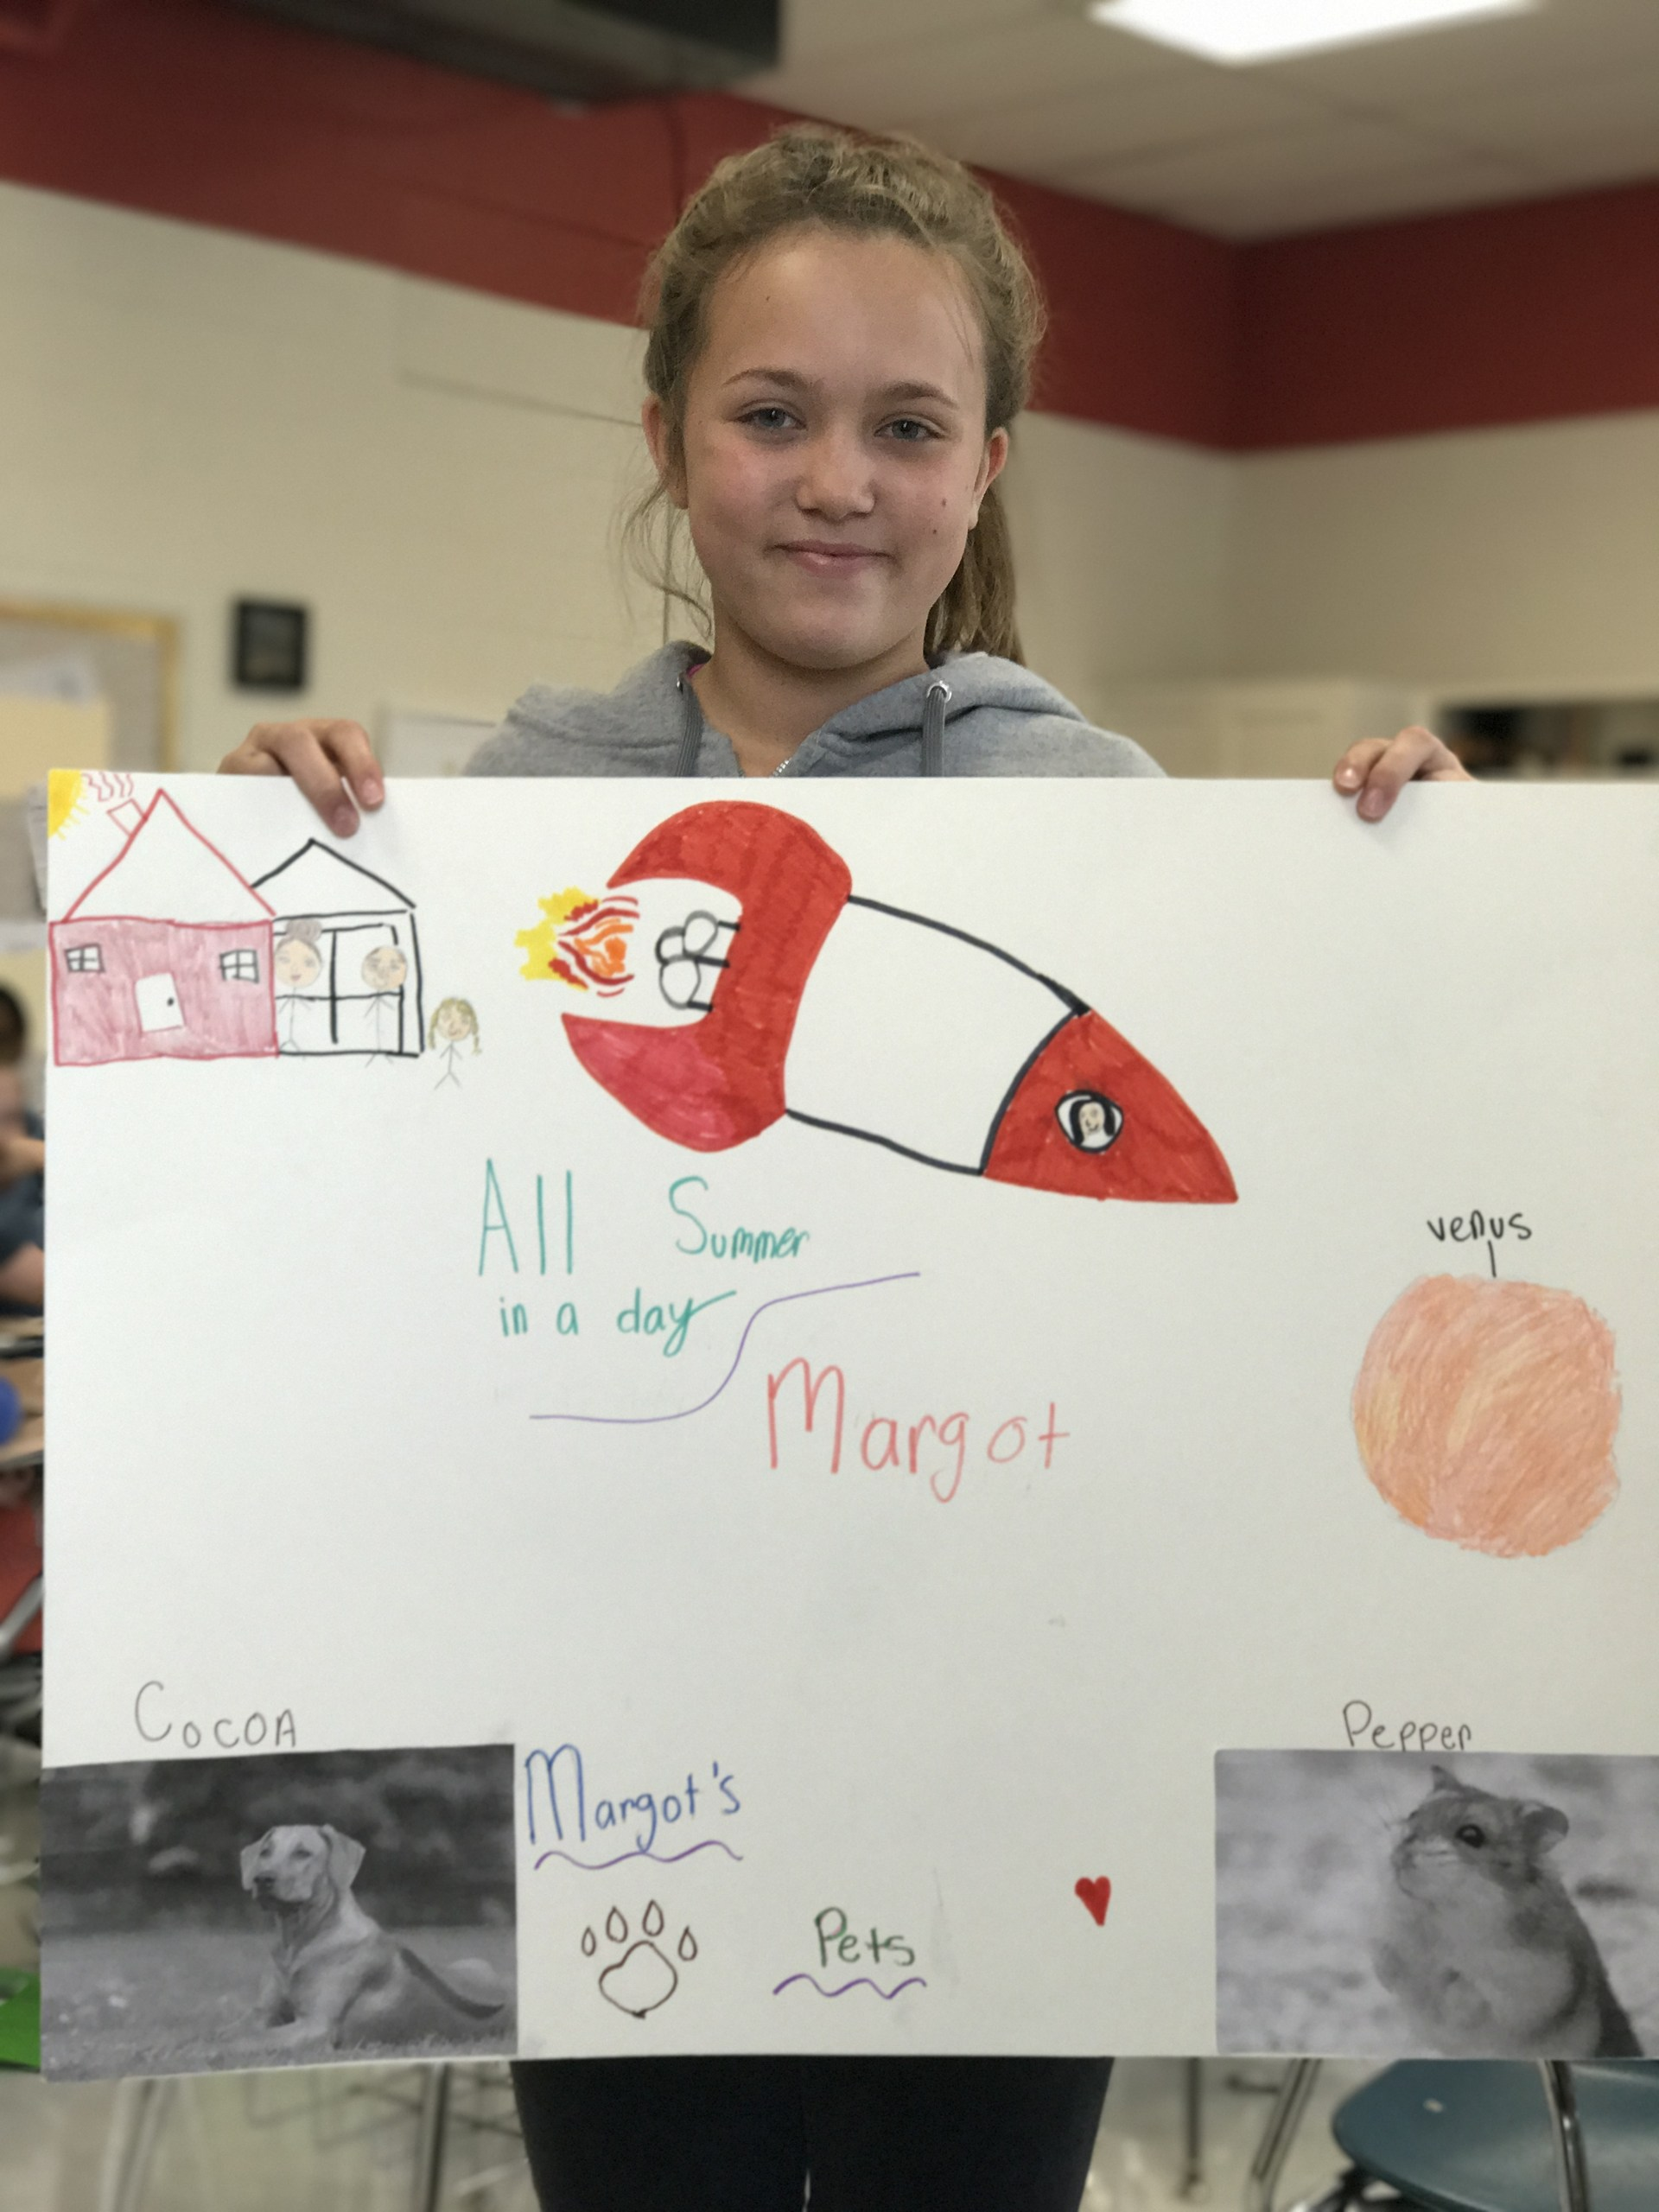 Abby's poster shows the plot of our story.